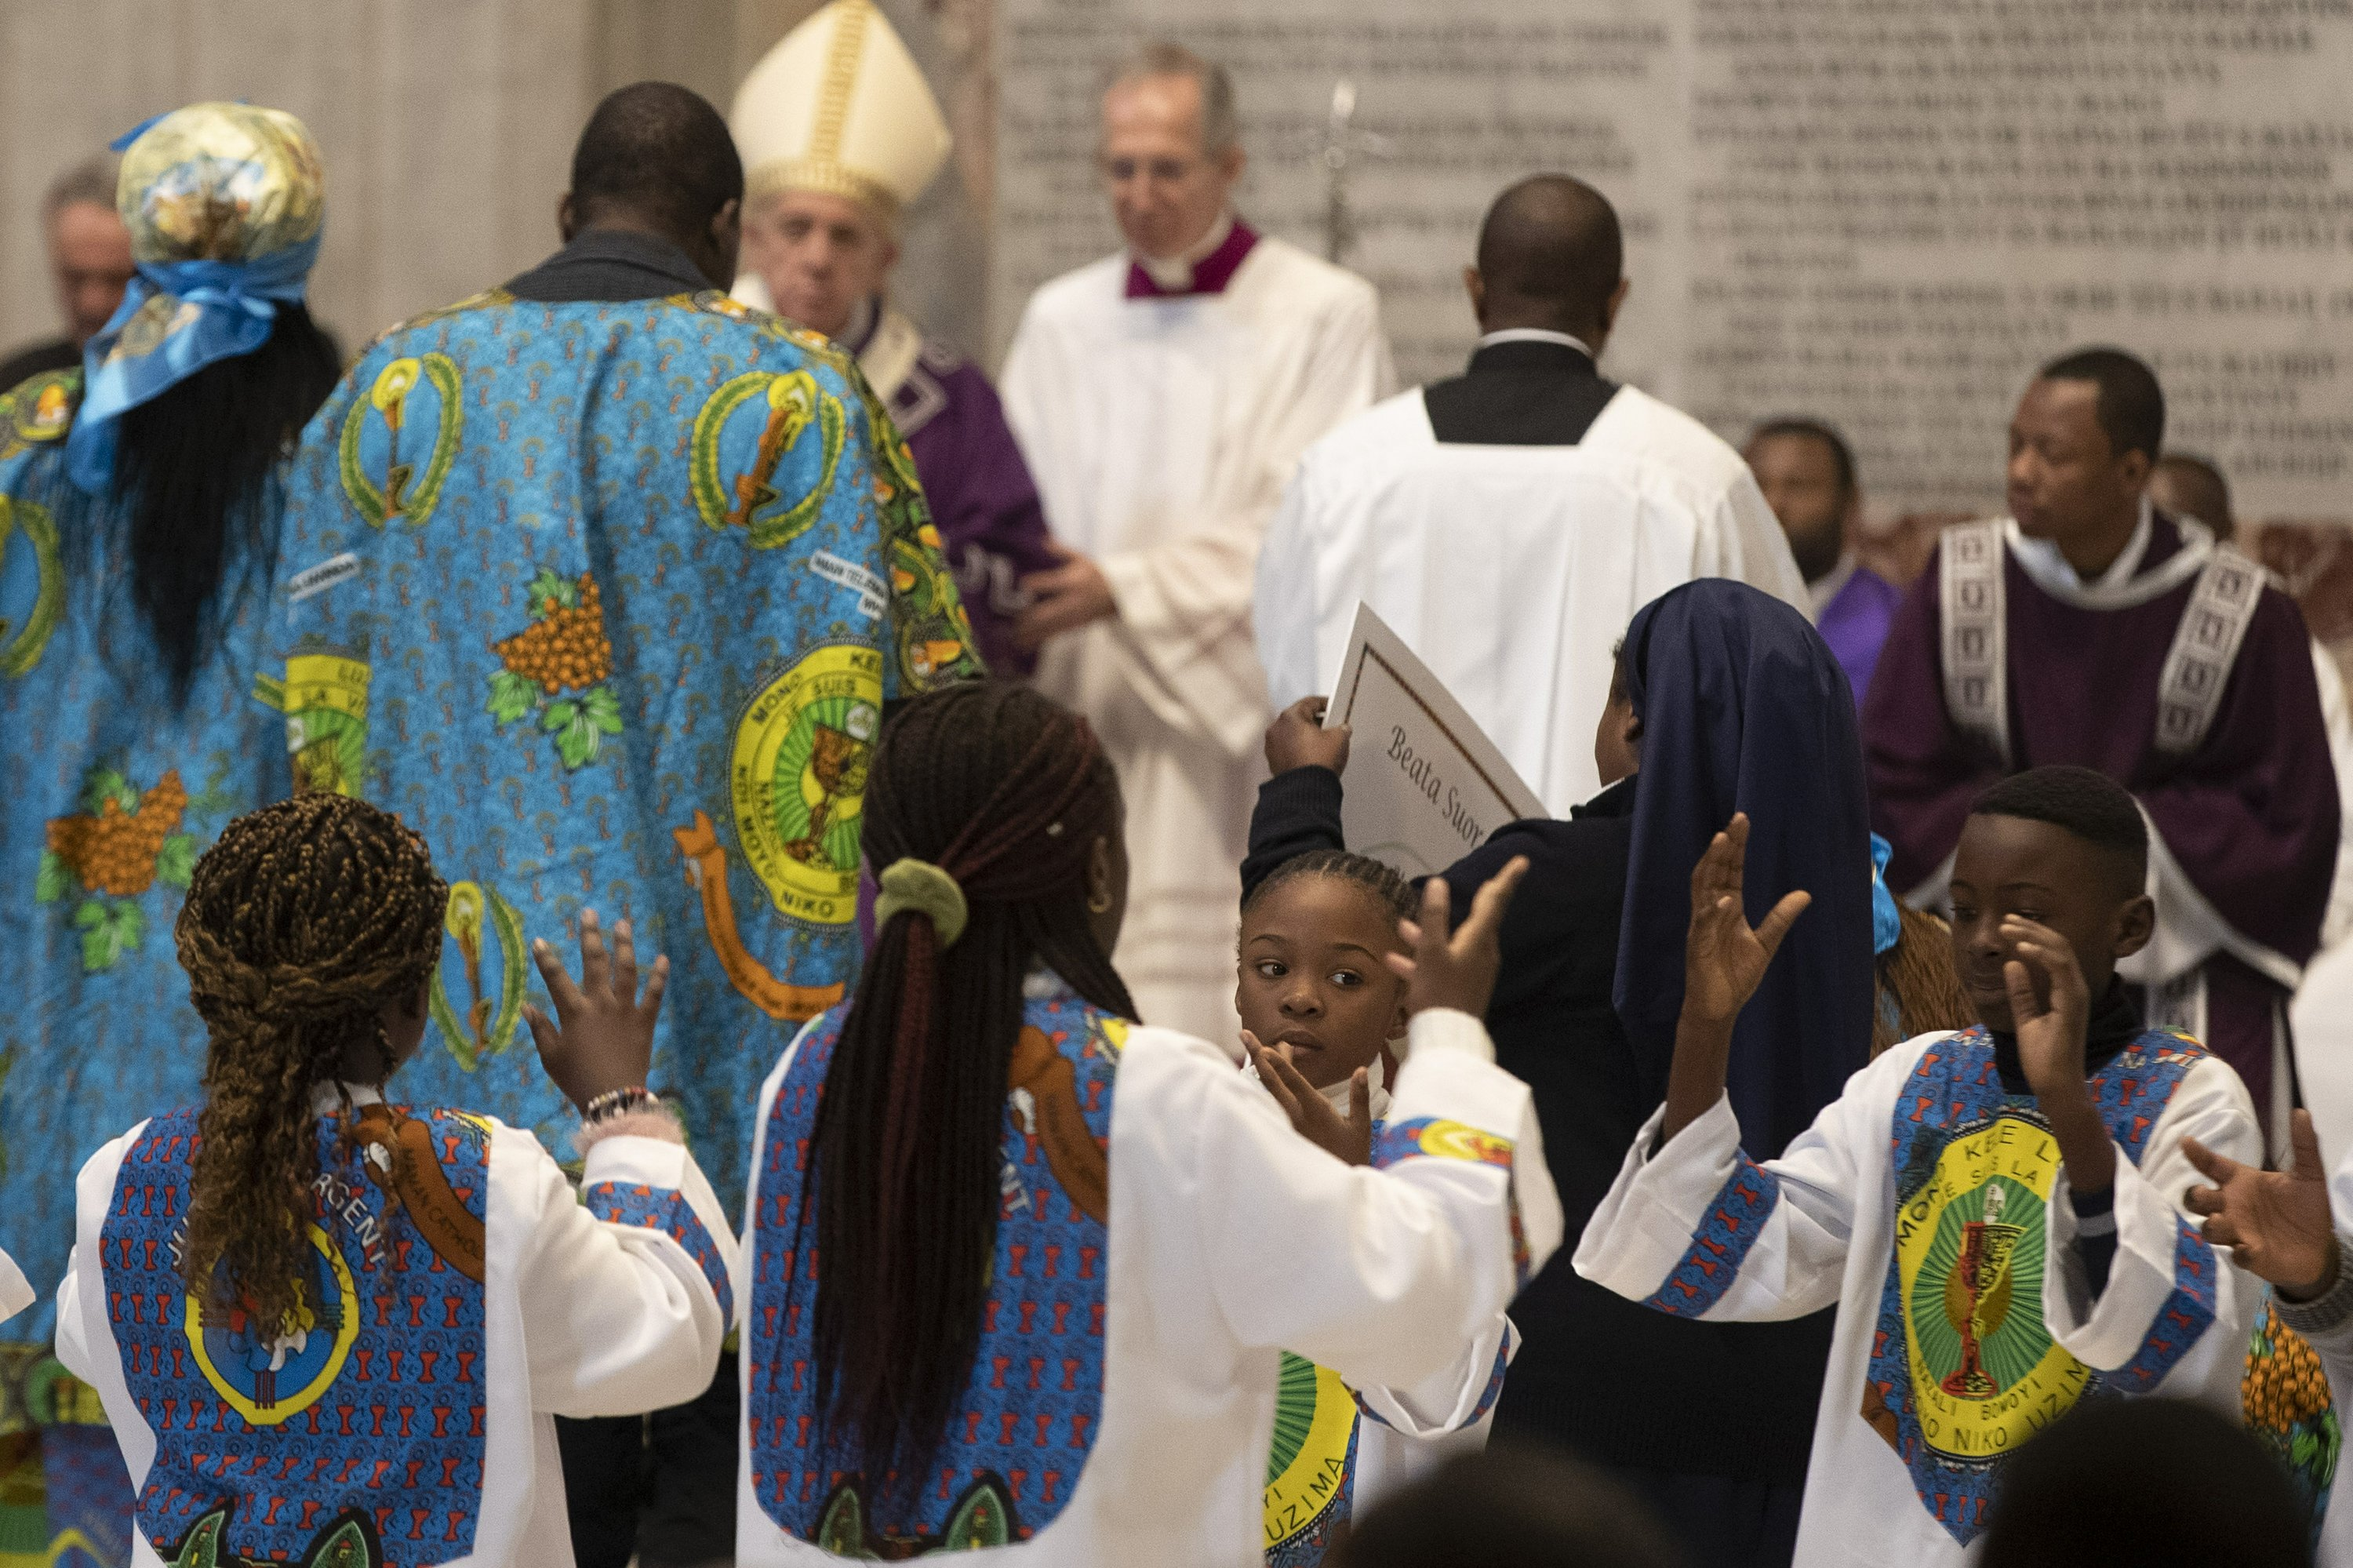 Joyous Congolese dances, songs enliven St. Peter's Basilica